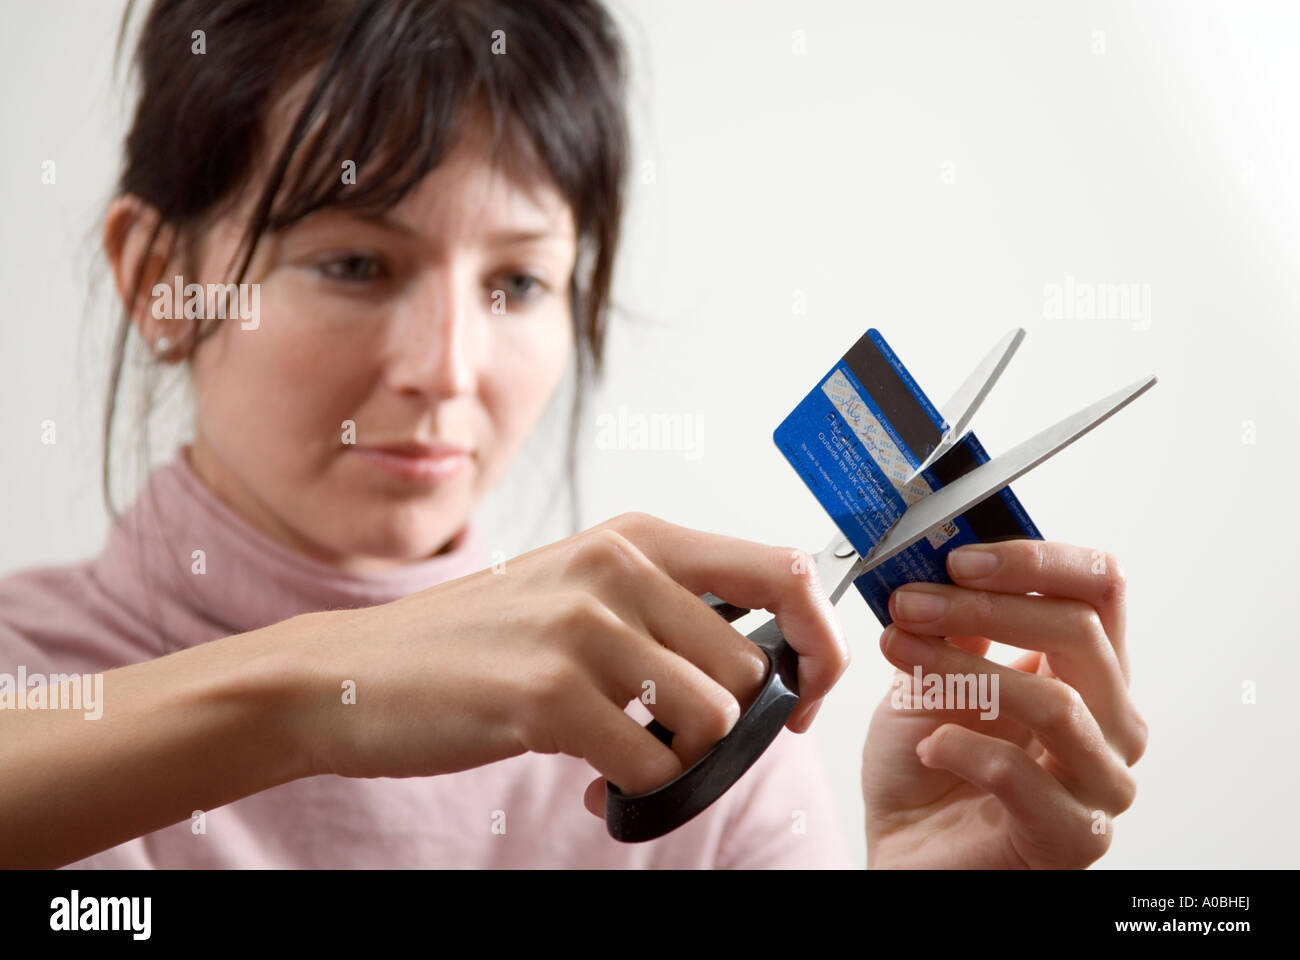 Young woman cutting up credit card with scissors, England UK - Stock Image